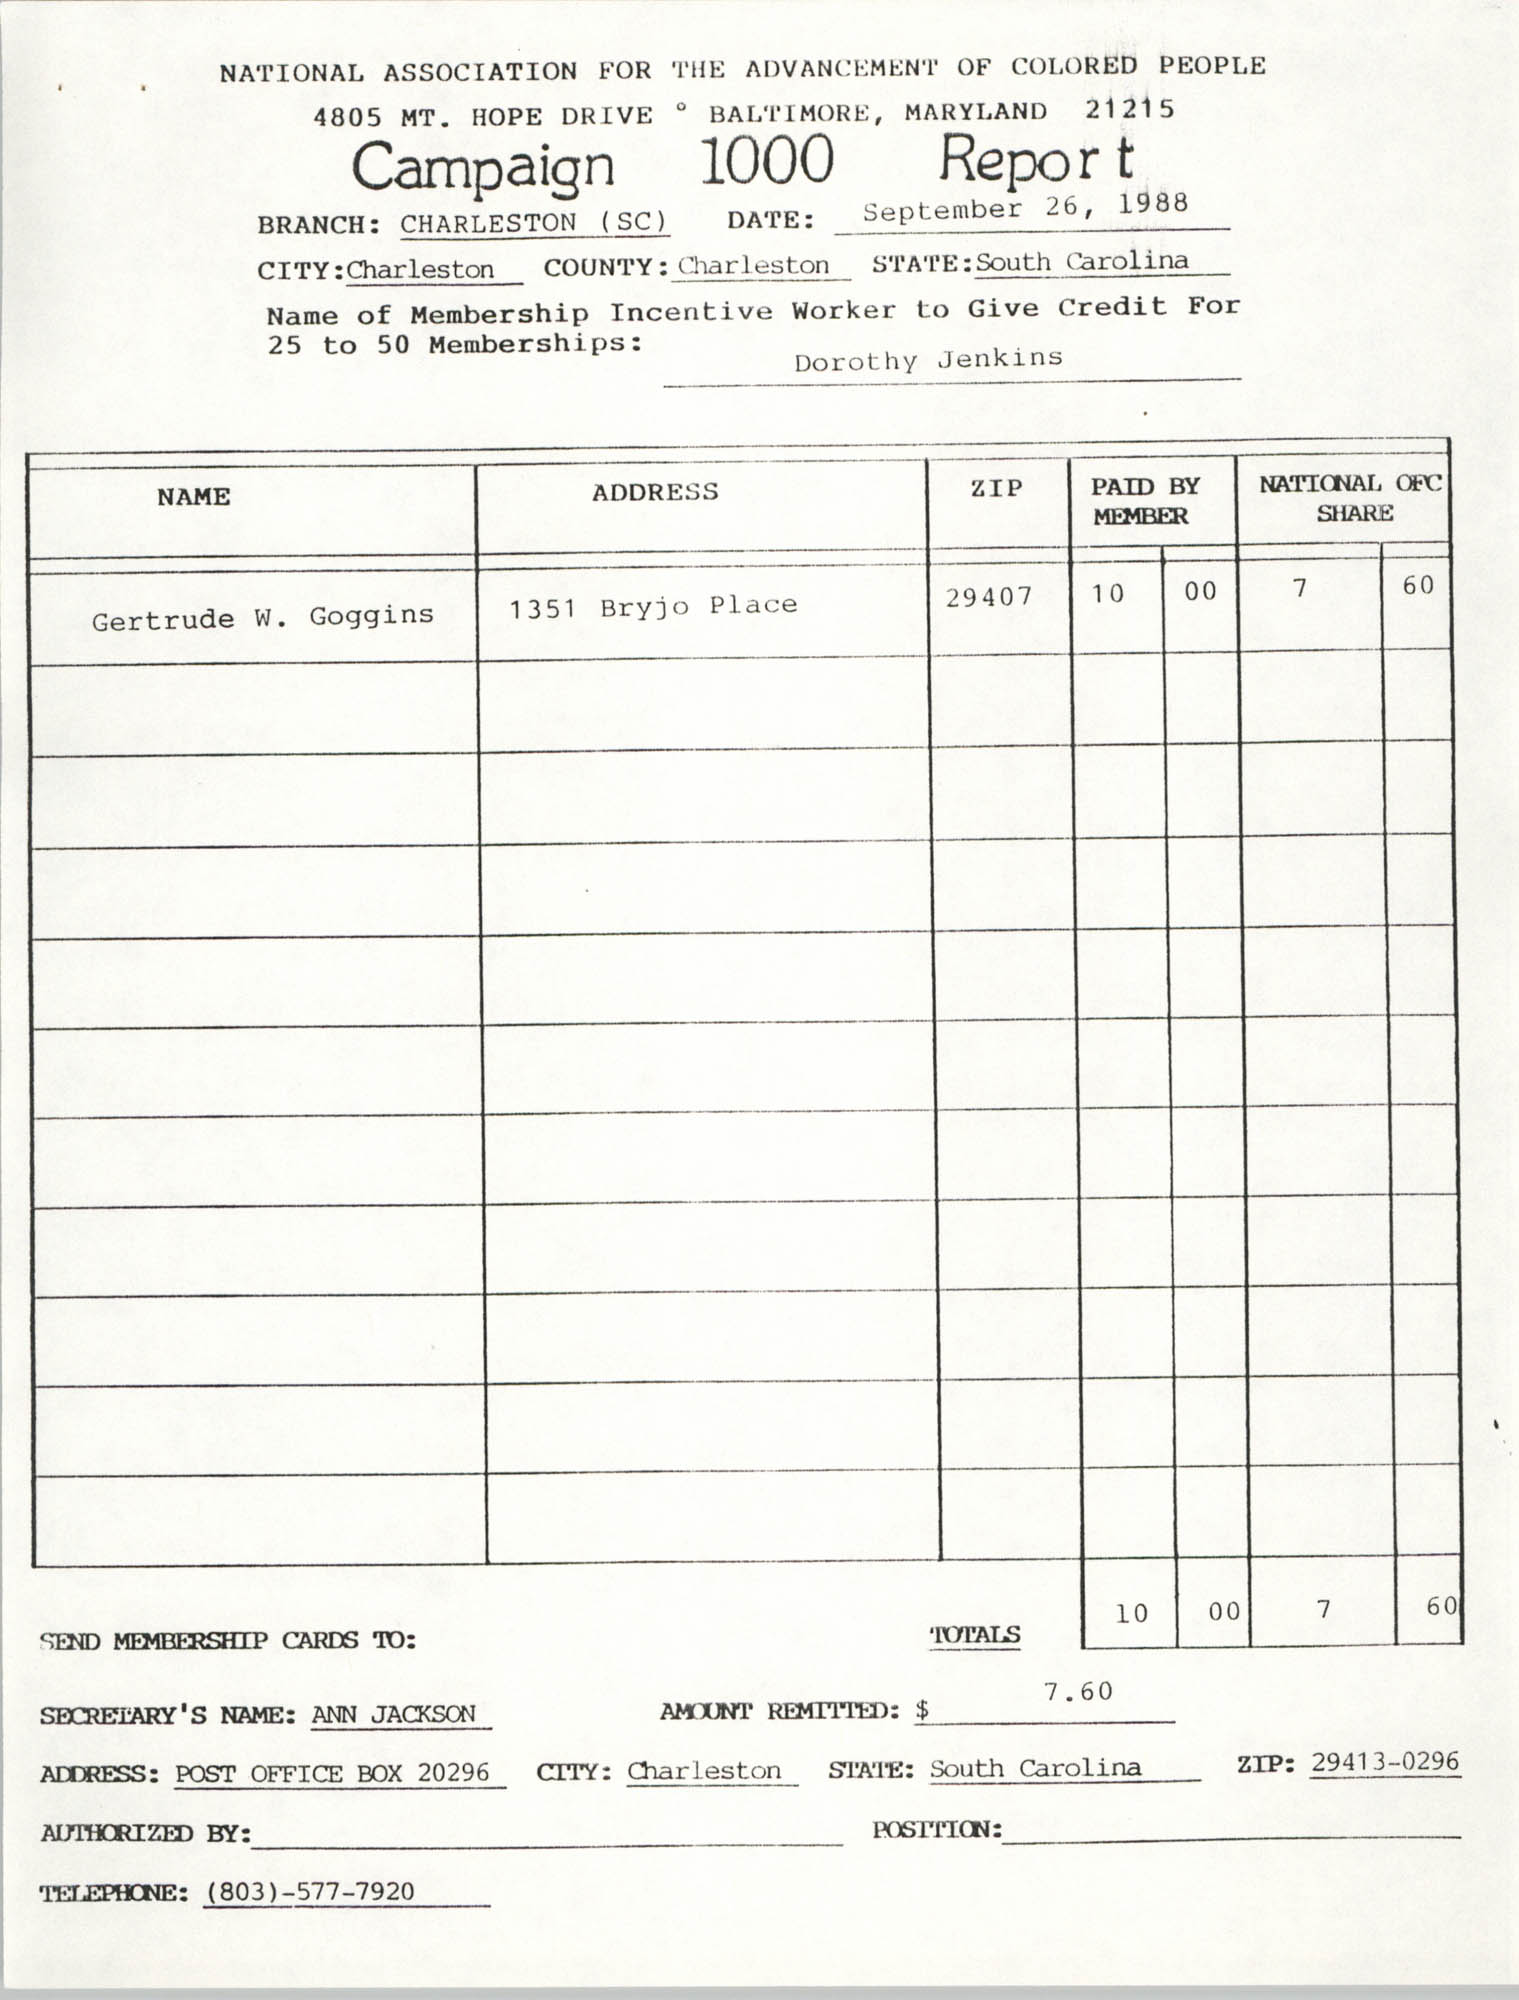 Campaign 1000 Report, Dorothy Jenkins, Charleston Branch of the NAACP, September 26, 1988